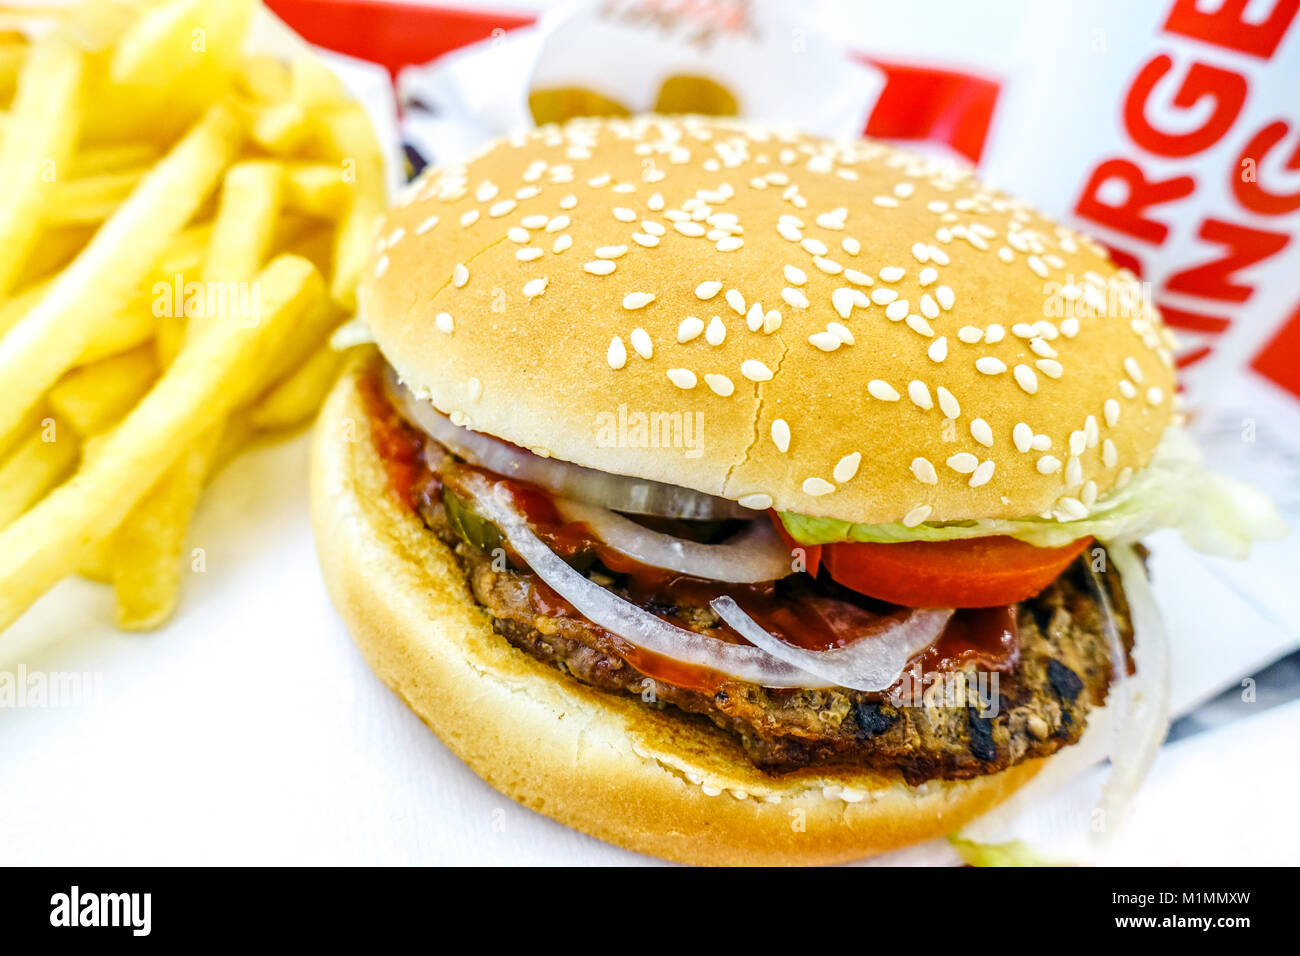 Burger King whopper meal menu Stock Photo: 173173809 - Alamy